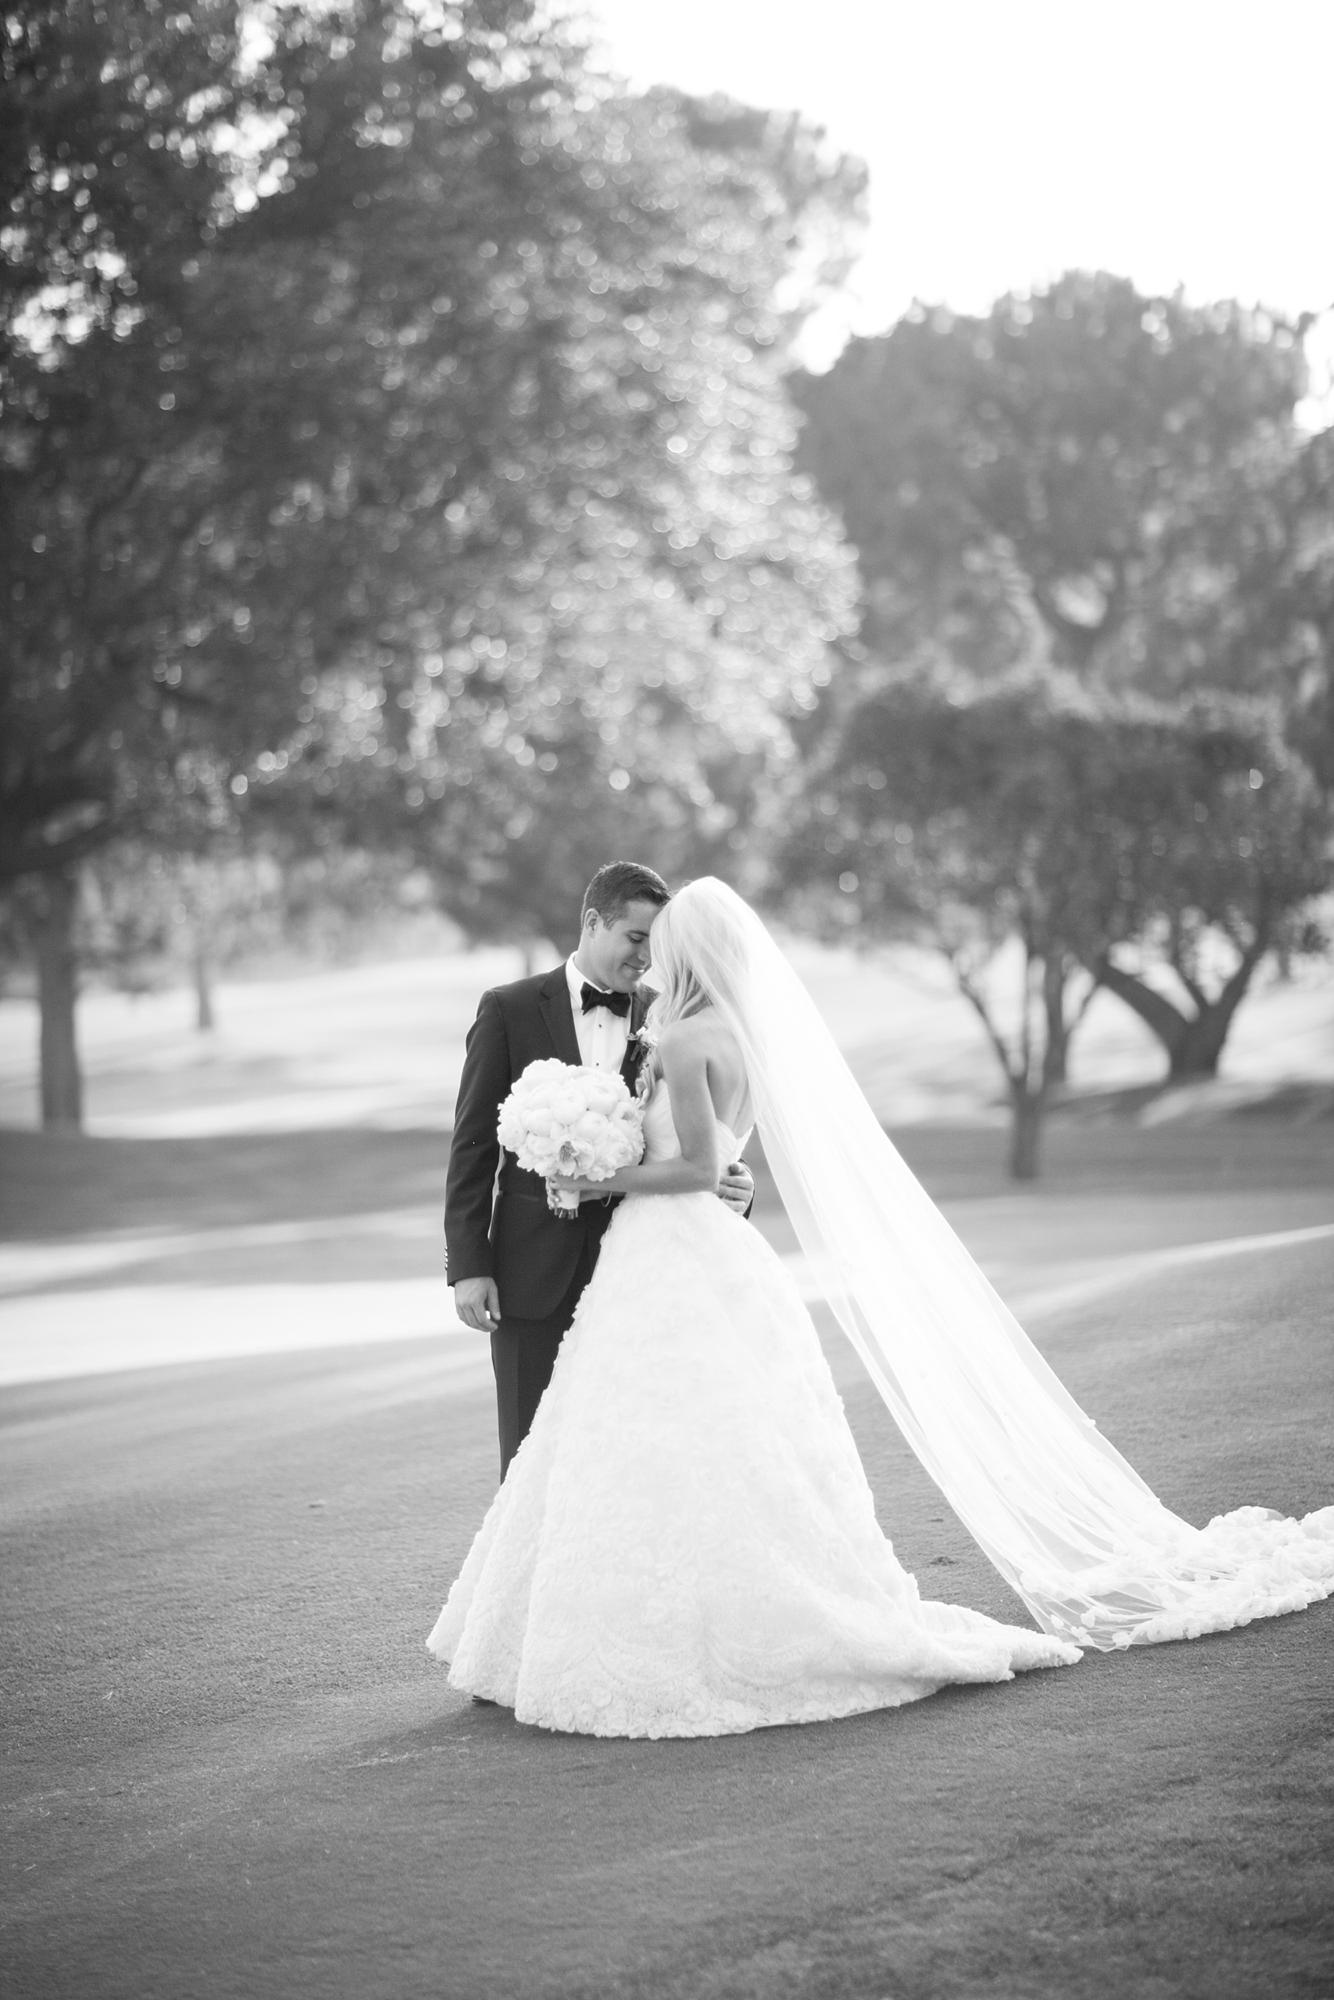 Annandale Golf Club Wedding | Miki & Sonja Photography | mikiandsonja.com